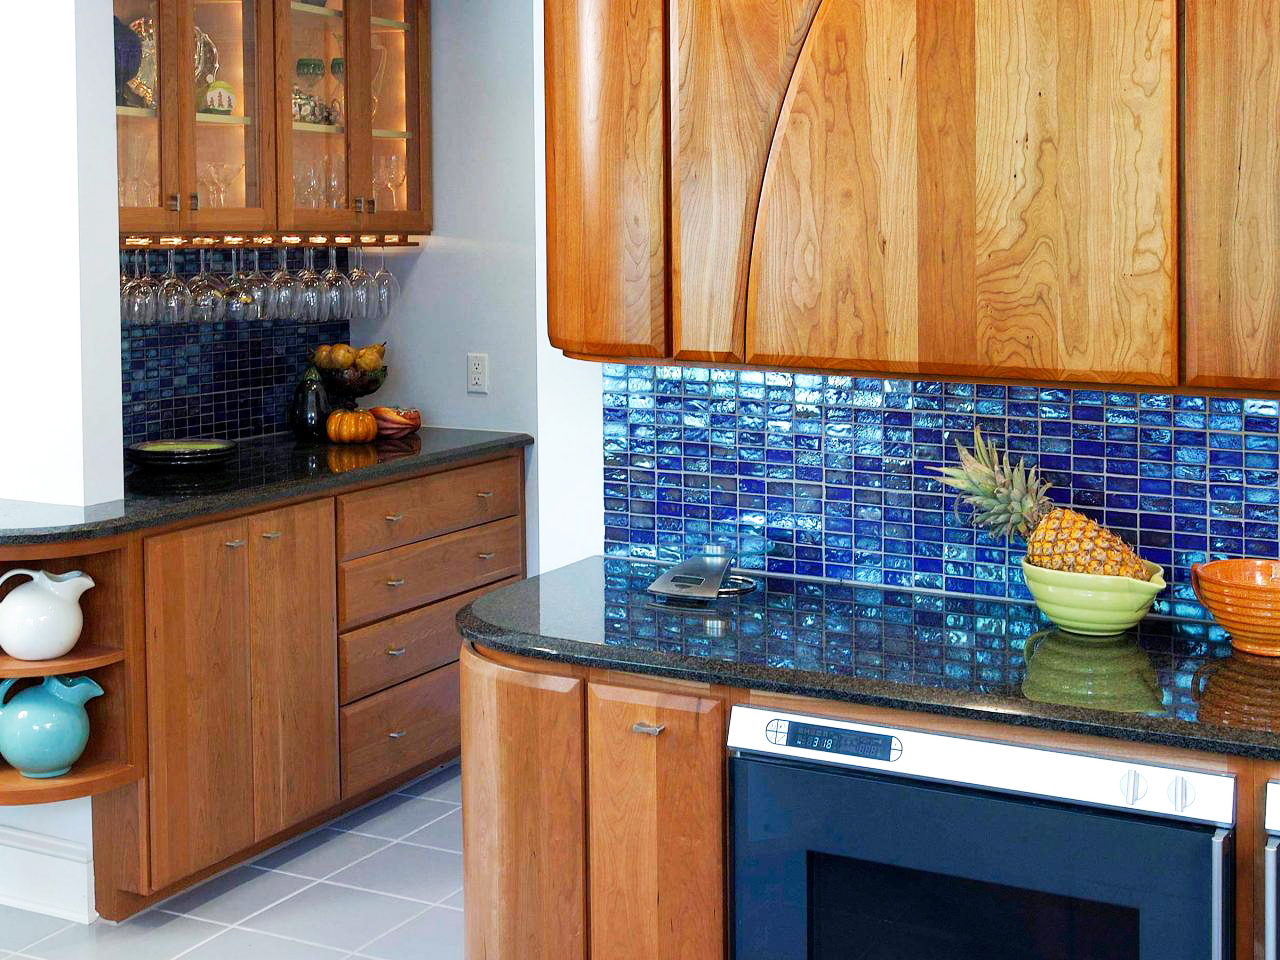 cost to remodel kitchen with blue backsplash for small kitchen remodel in average cost remodeling kitchen and maple kitchen cabinets